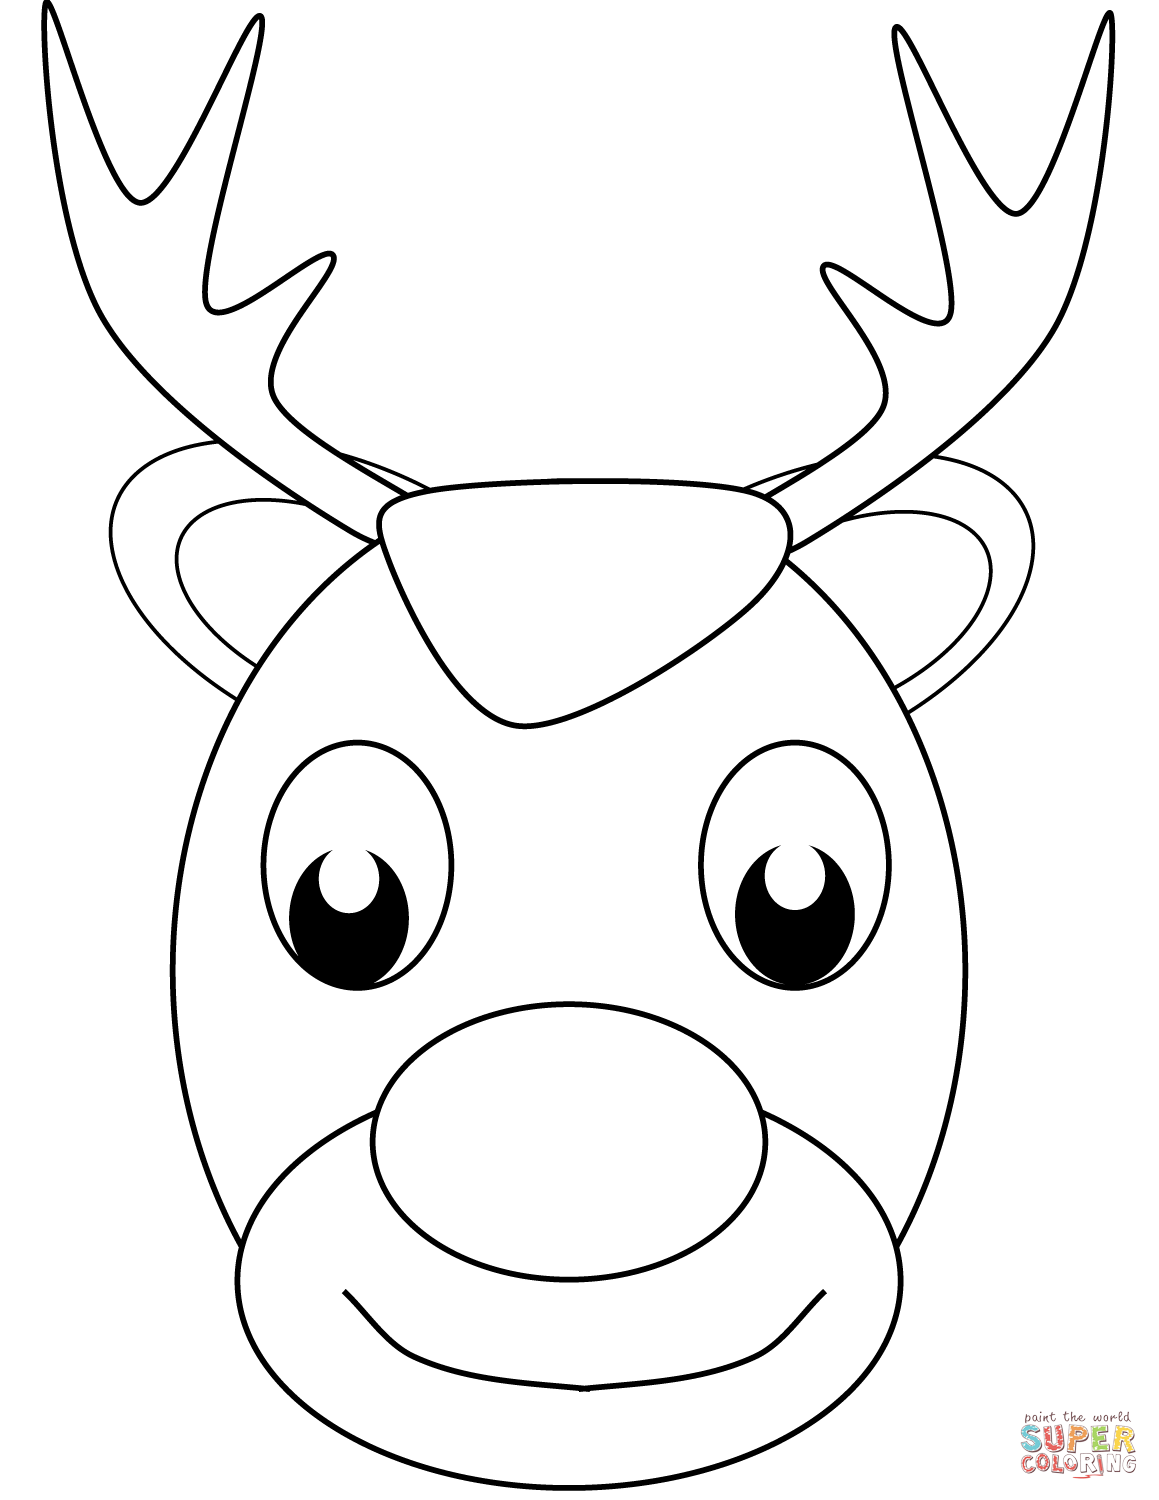 how to draw a reindeer face reindeer face drawing at getdrawings free download face draw how reindeer a to